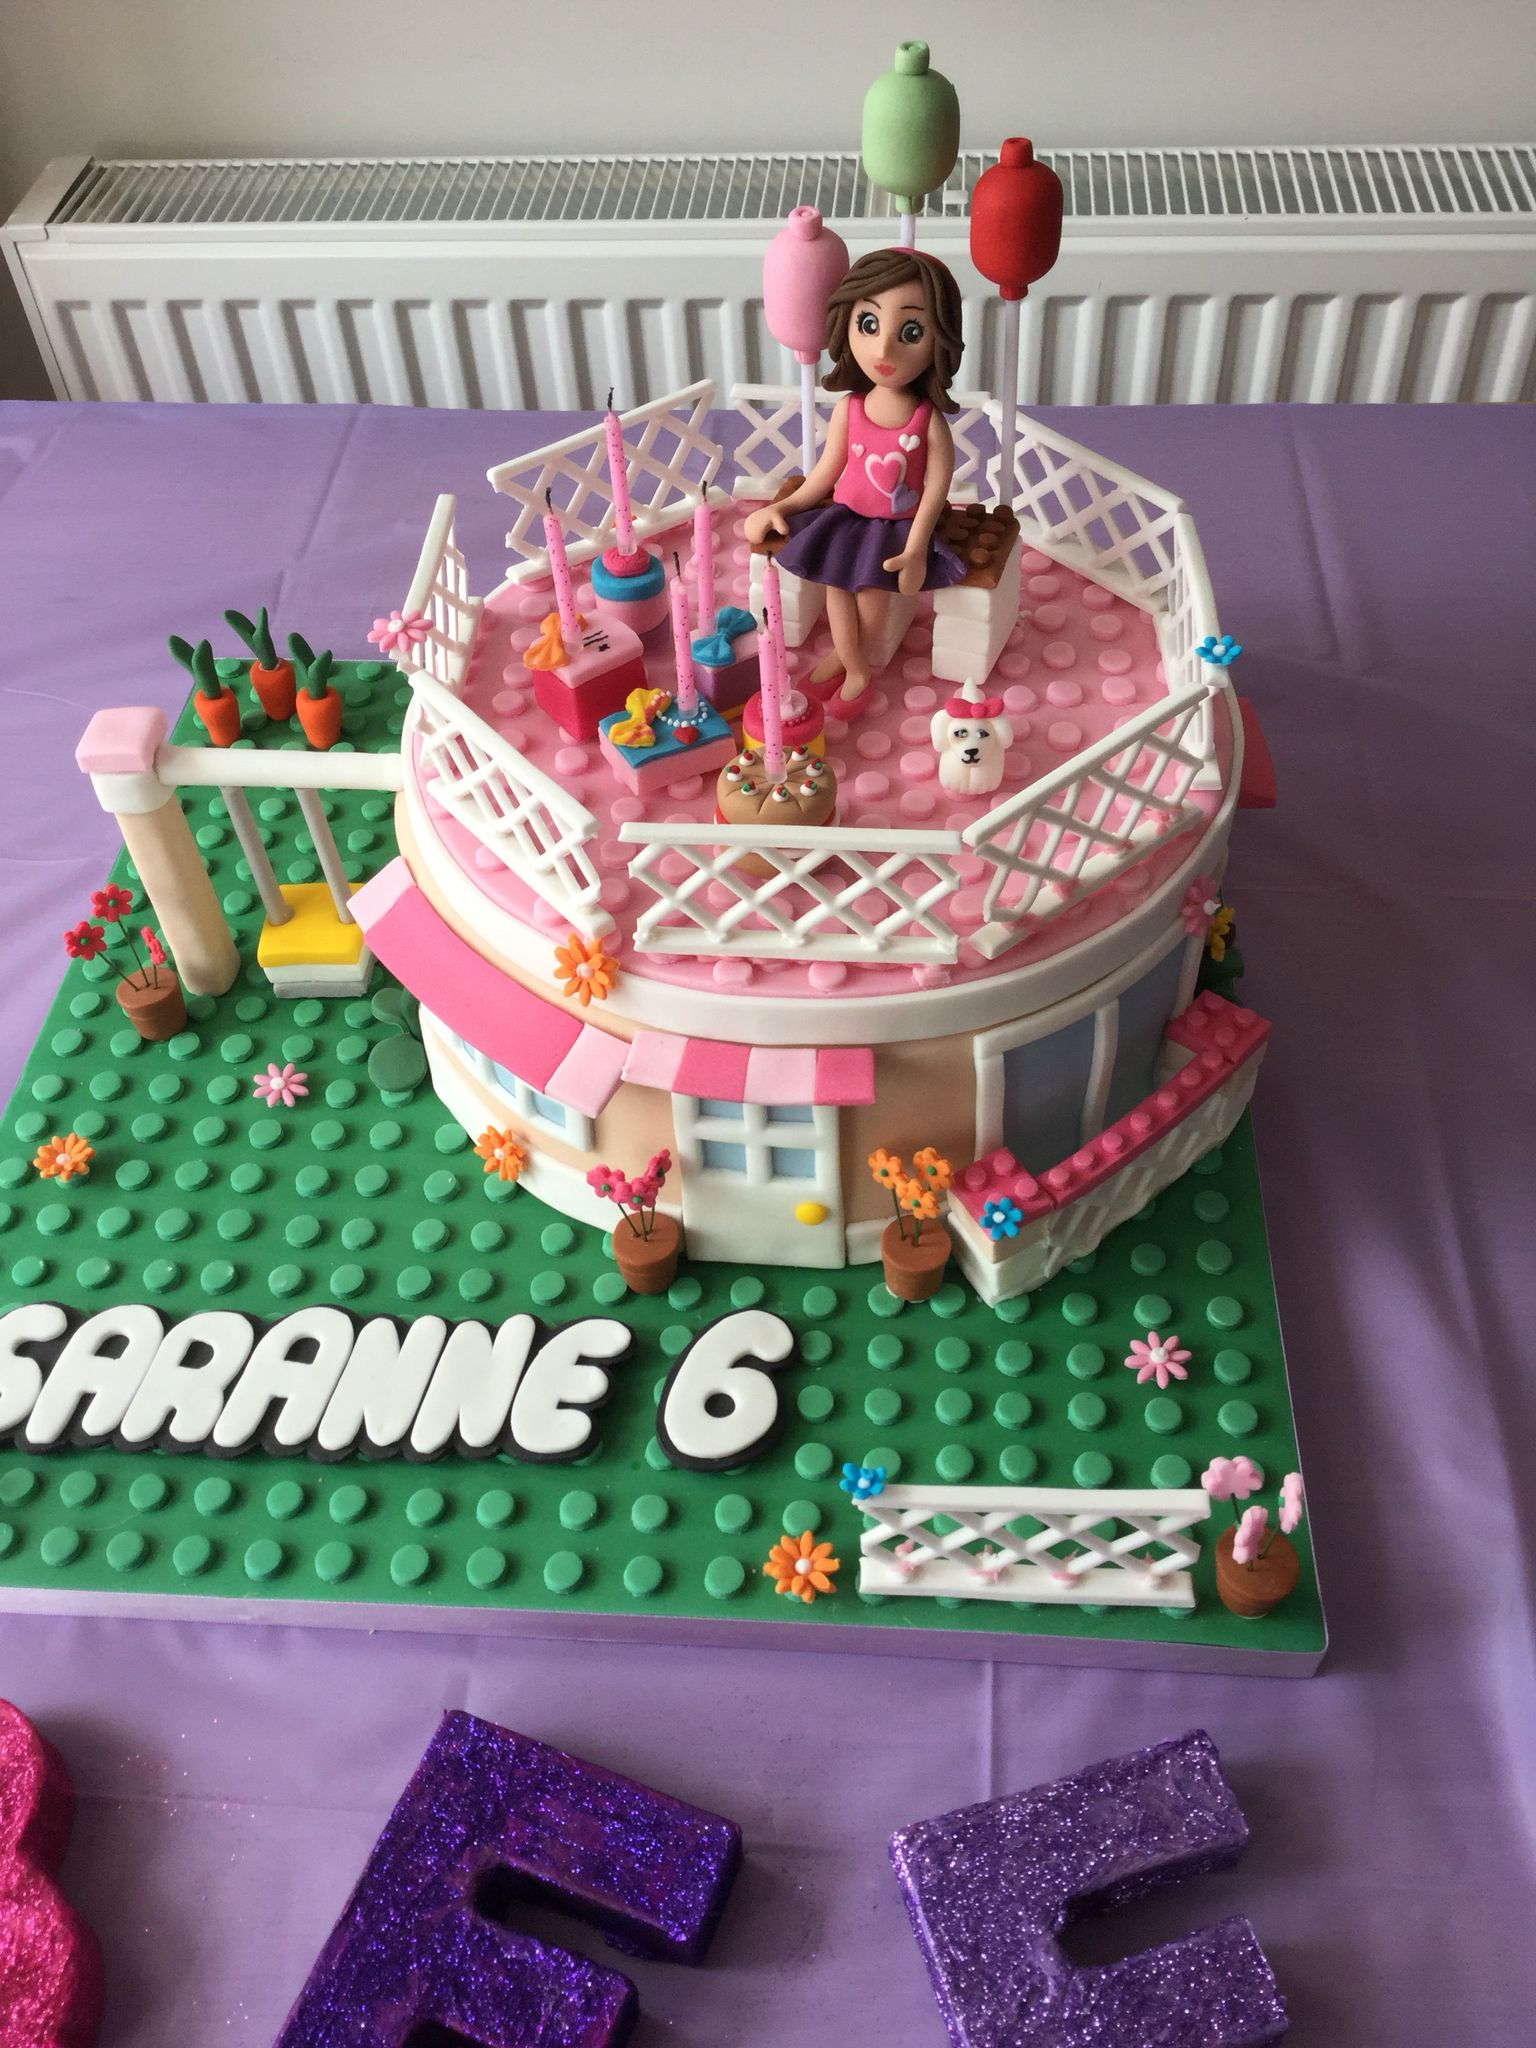 Cool Sarannes Lego Friends Birthday Cake Olivias House Made By Personalised Birthday Cards Paralily Jamesorg